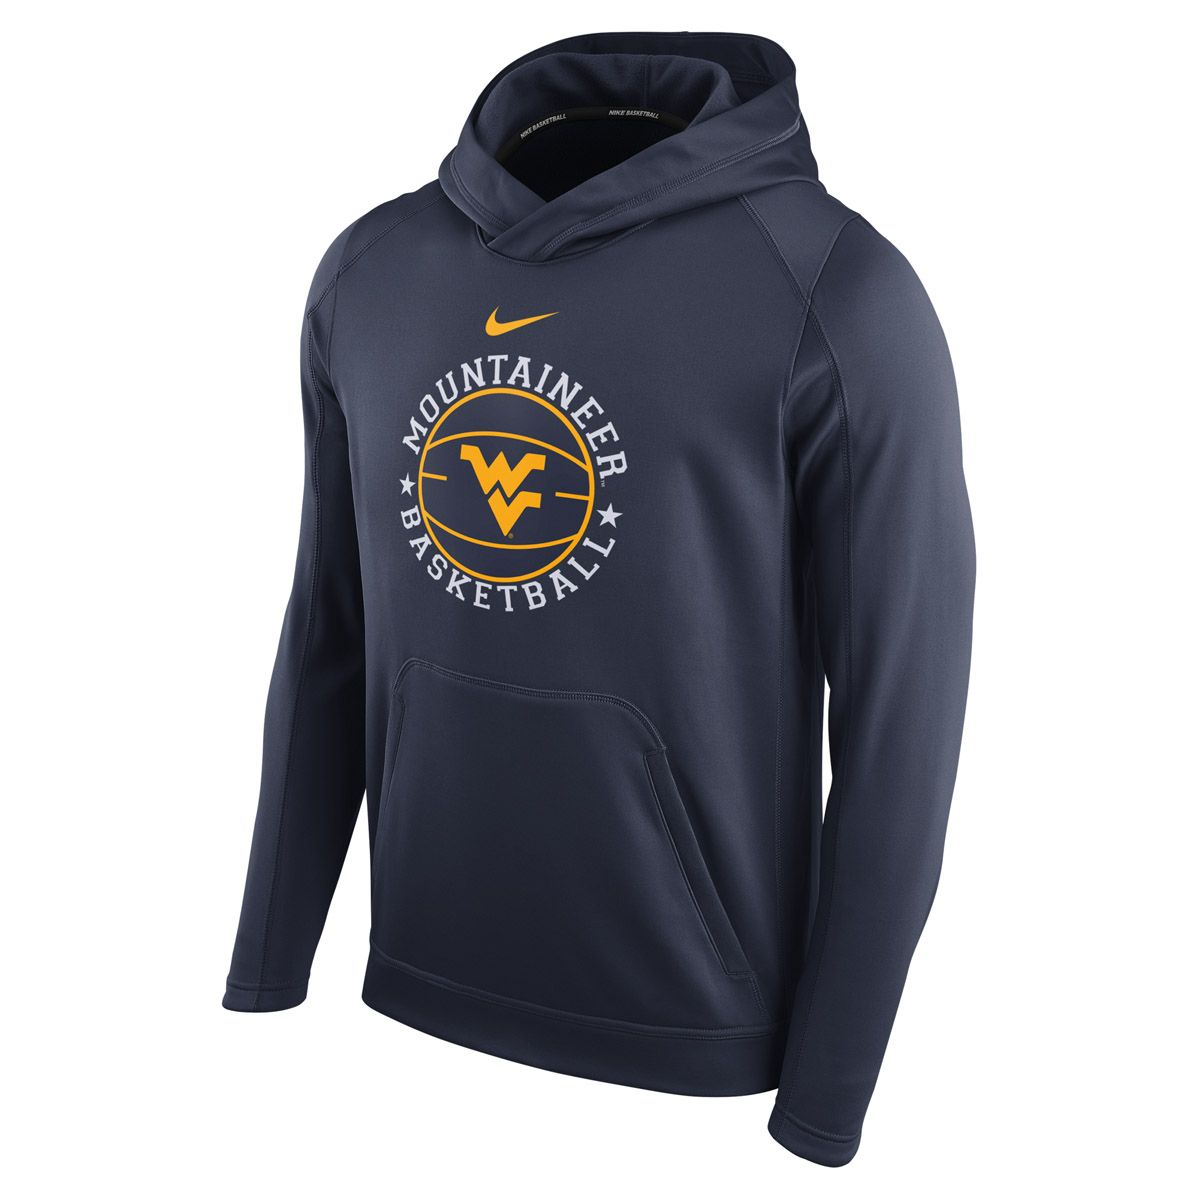 Show Off Your Pride For The Mountaineers On And Off The Court With Our Wvu Nike Circuit Pullover Hoodie Designed For Mobility You Nike Men Hoodies Nike West [ 1200 x 1200 Pixel ]